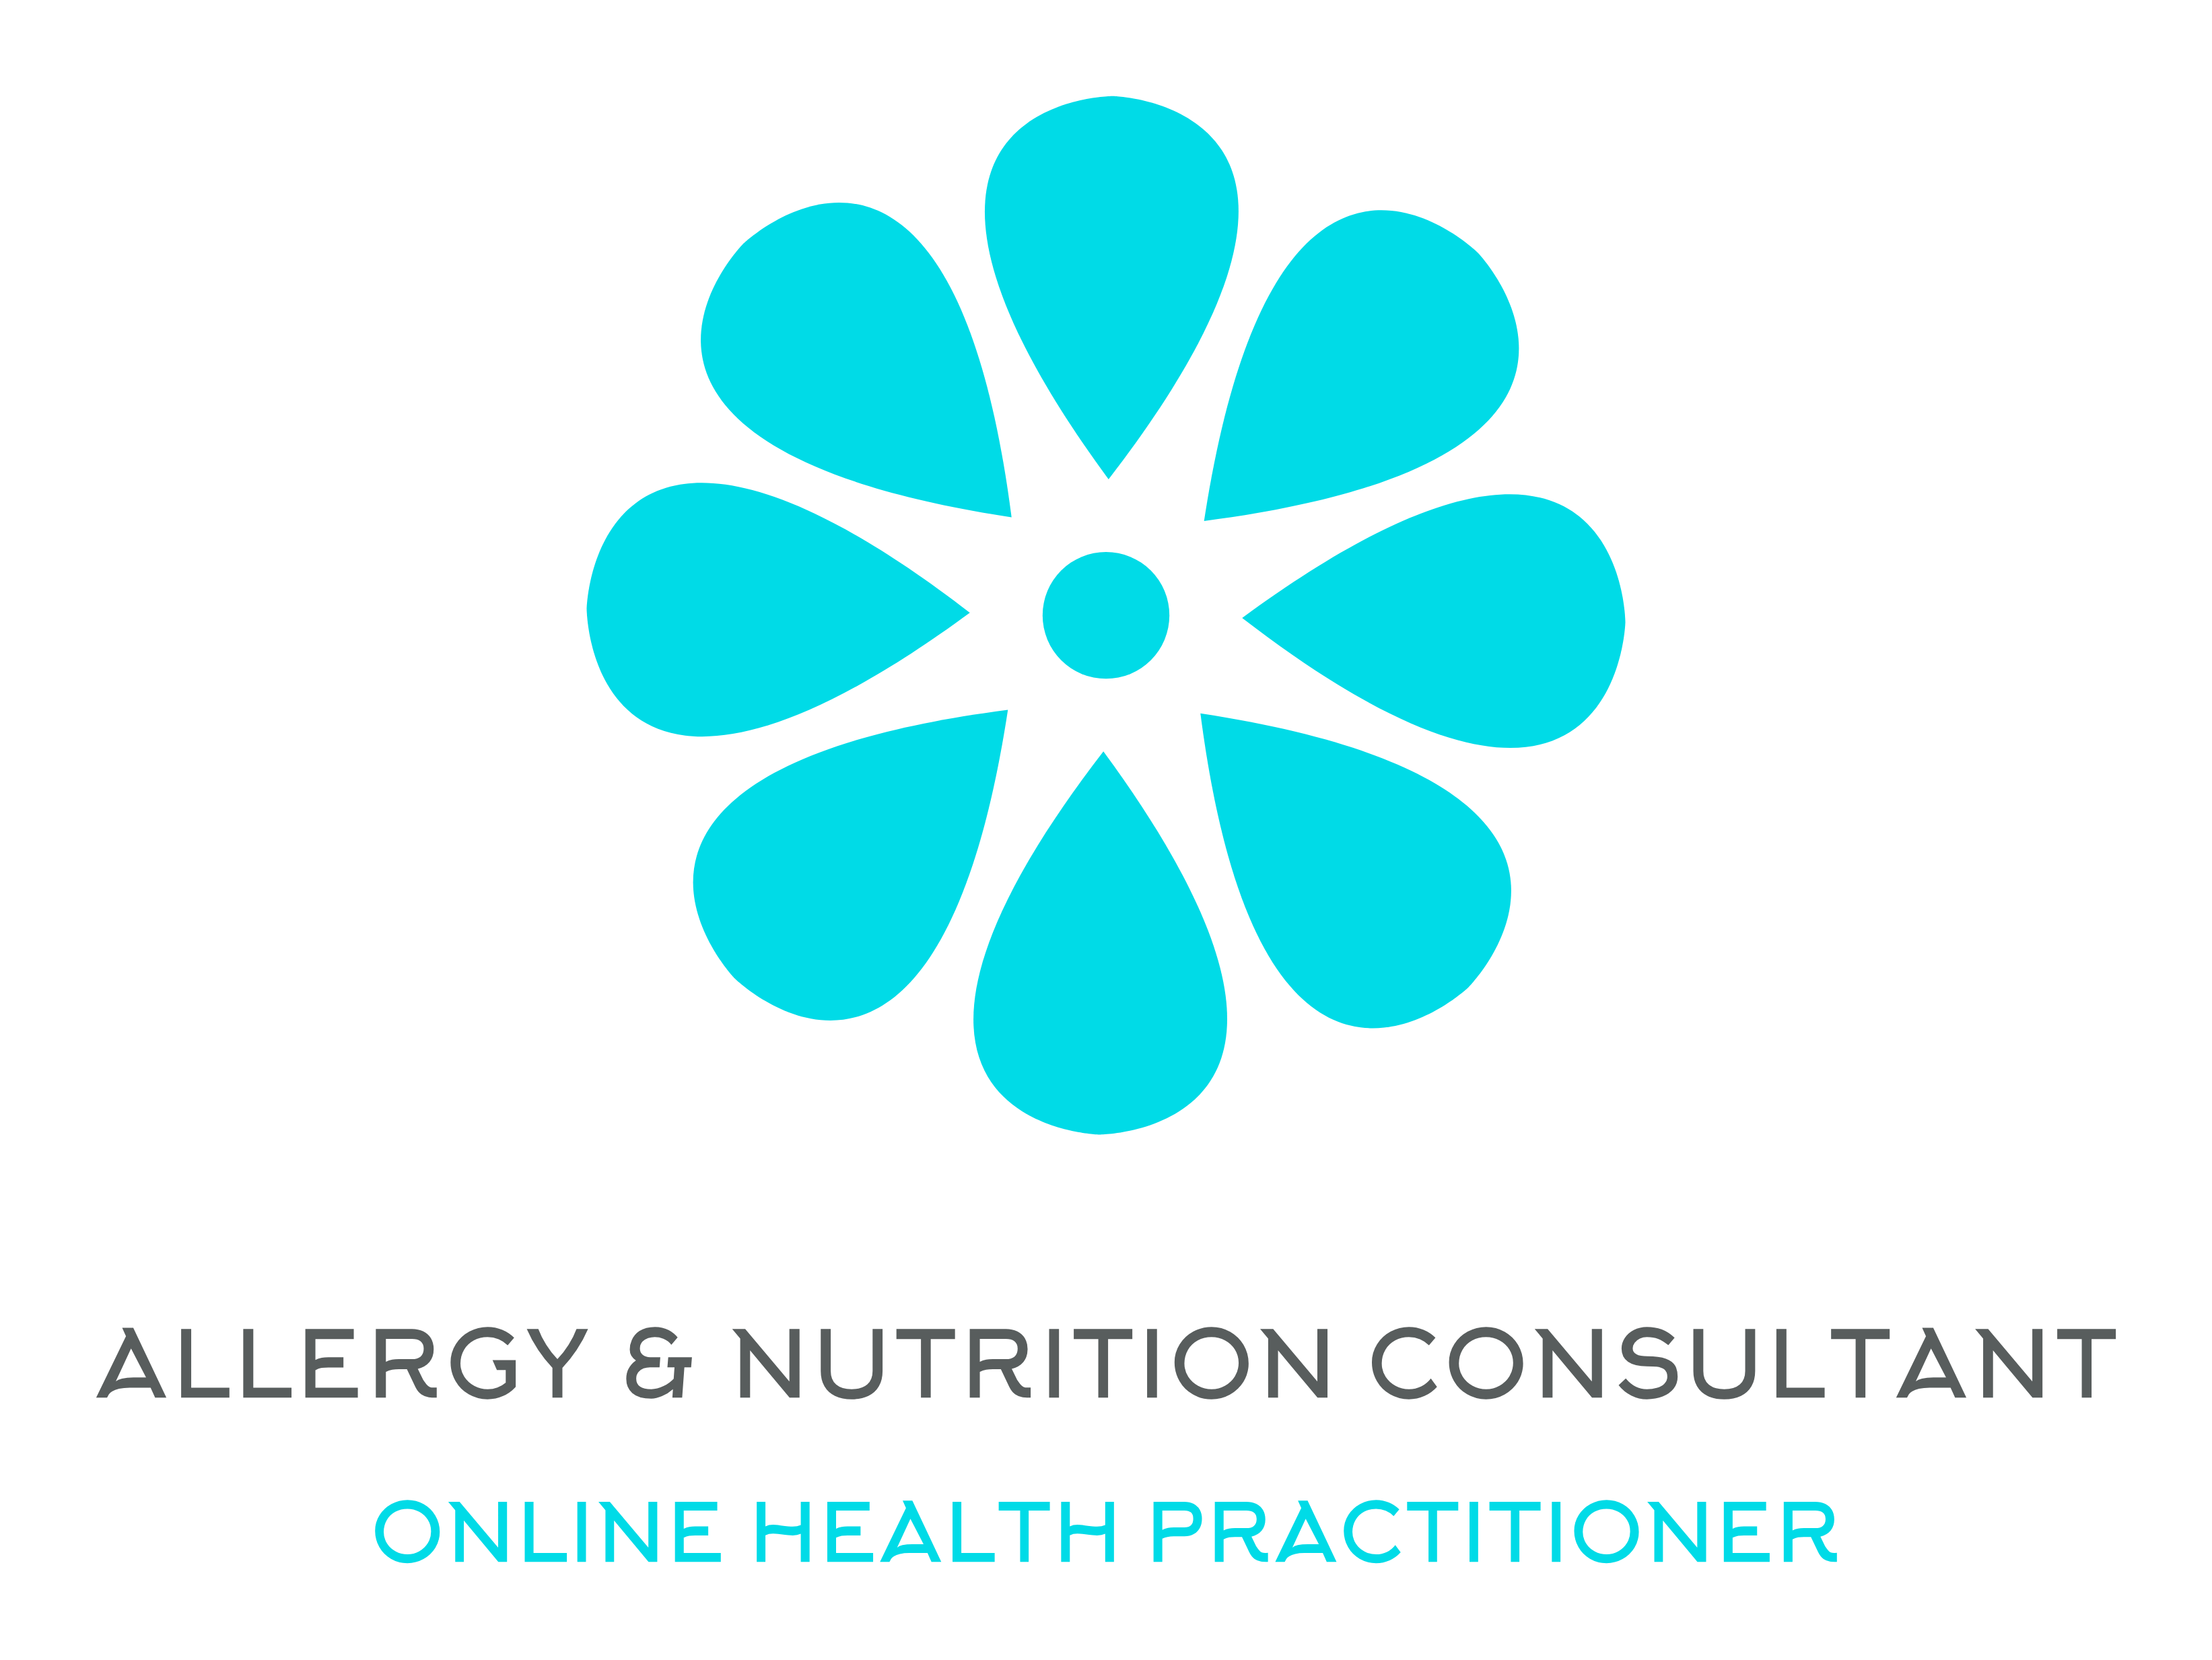 Allergy & Nutrition Consultant